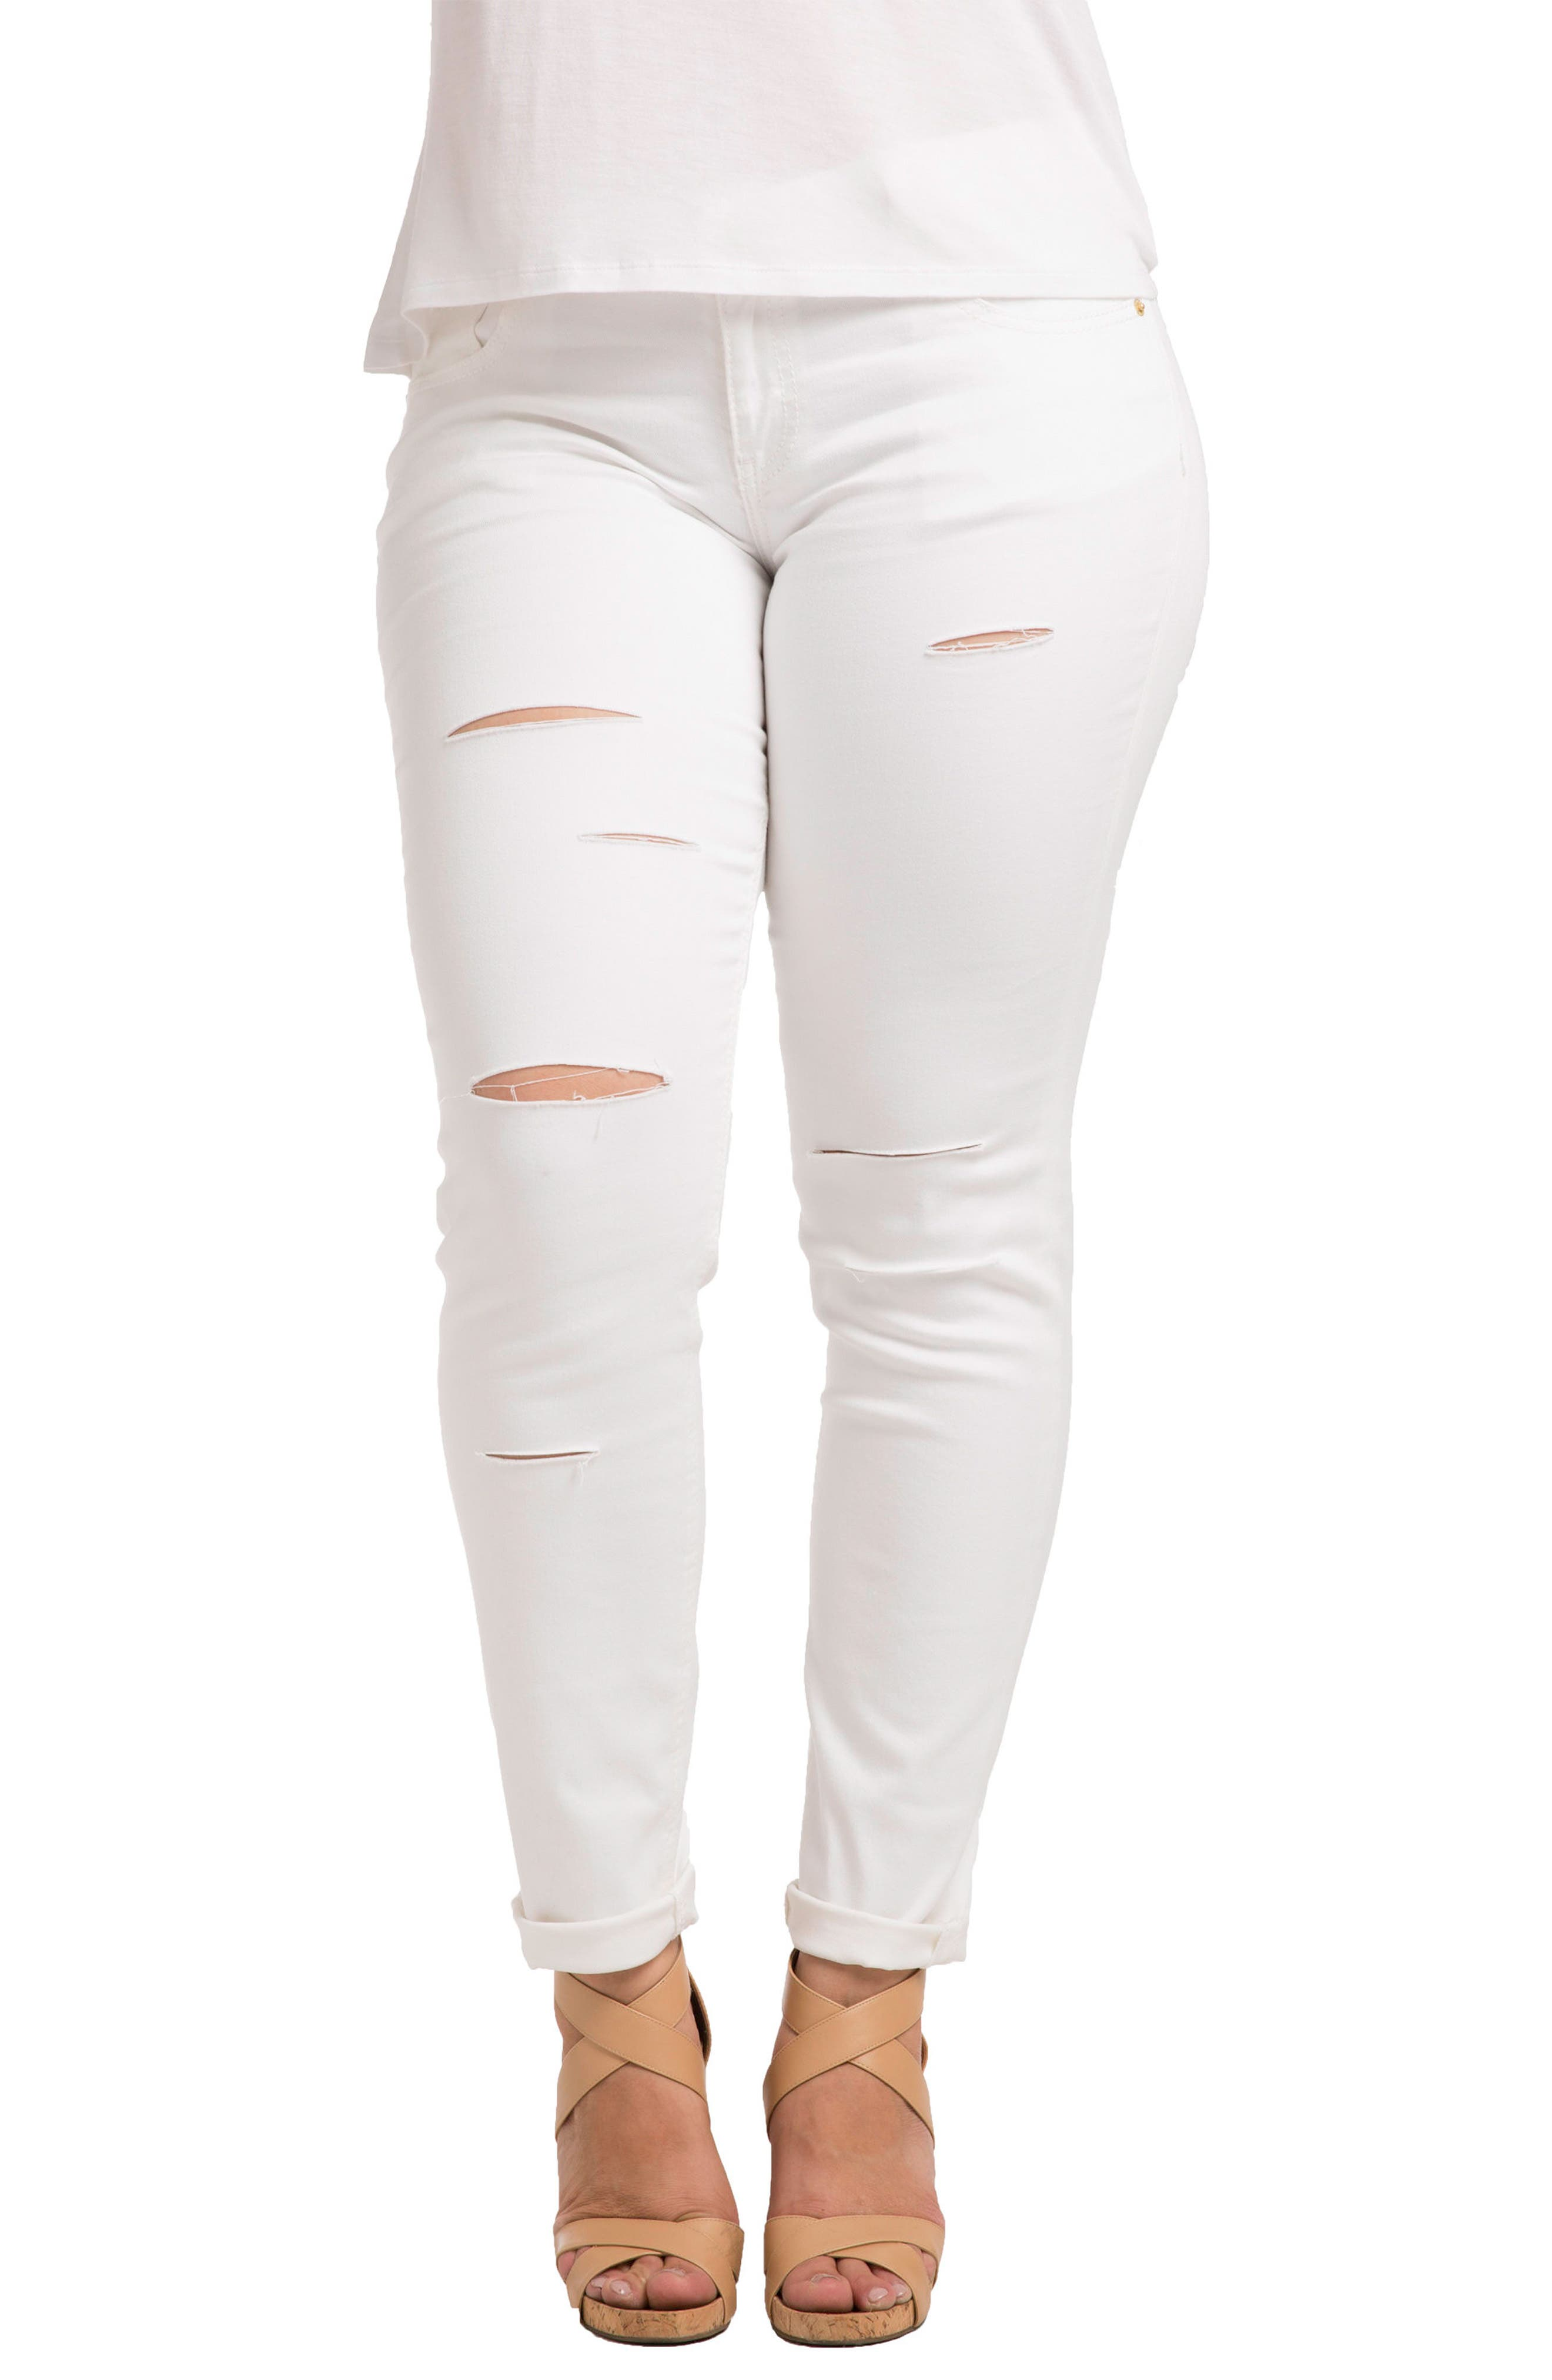 STANDARDS & PRACTICES, Destroyed Stretch Skinny Boyfriend Jeans, Main thumbnail 1, color, WHITE